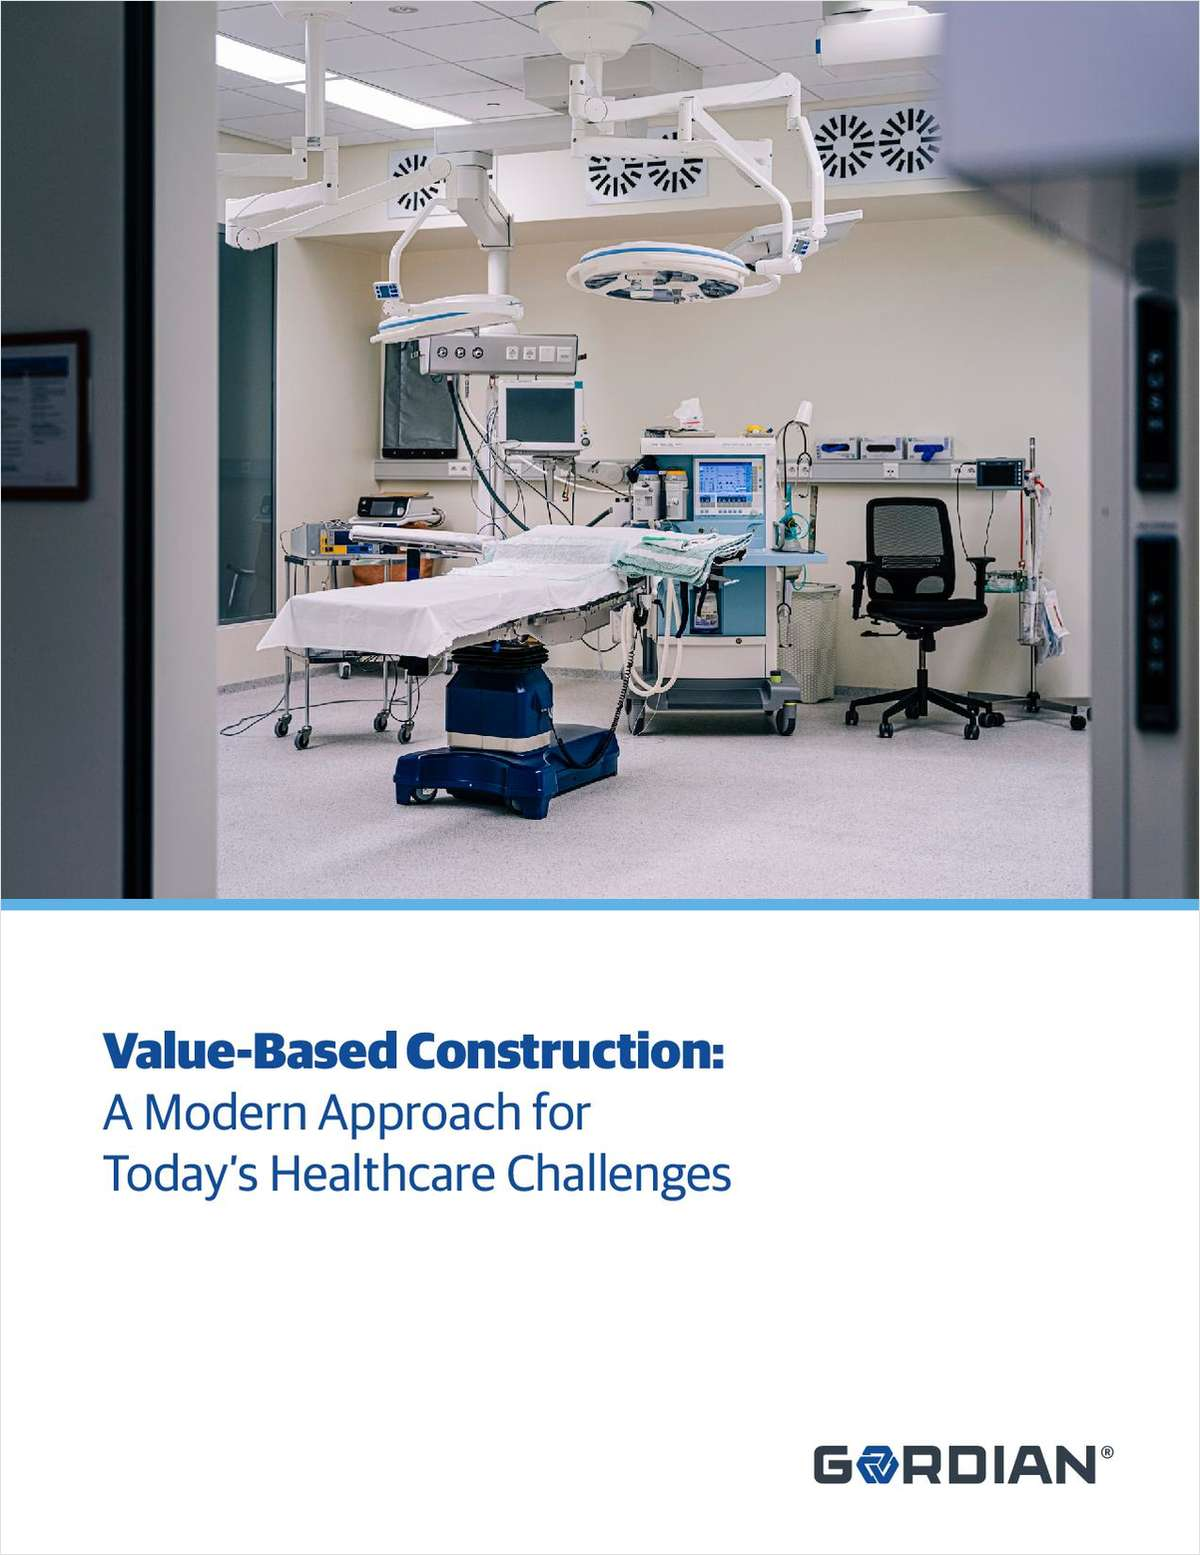 Value-Based Construction: A Modern Approach for Today's Healthcare Challenges